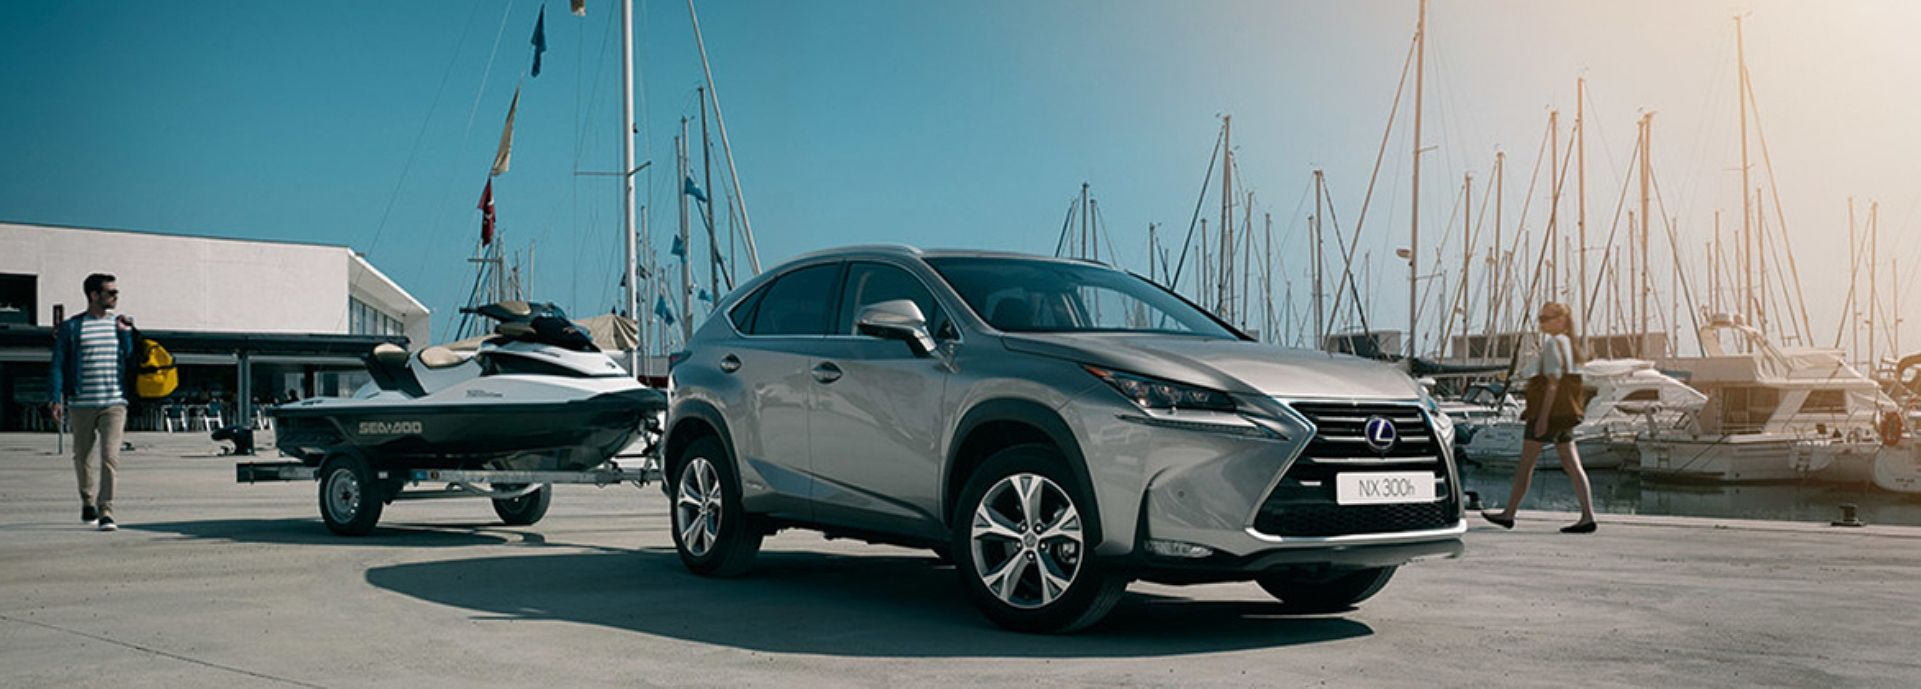 Used Lexus Suv For Sale >> Used Lexus Nx For Sale From Lexus Approved Pre Owned